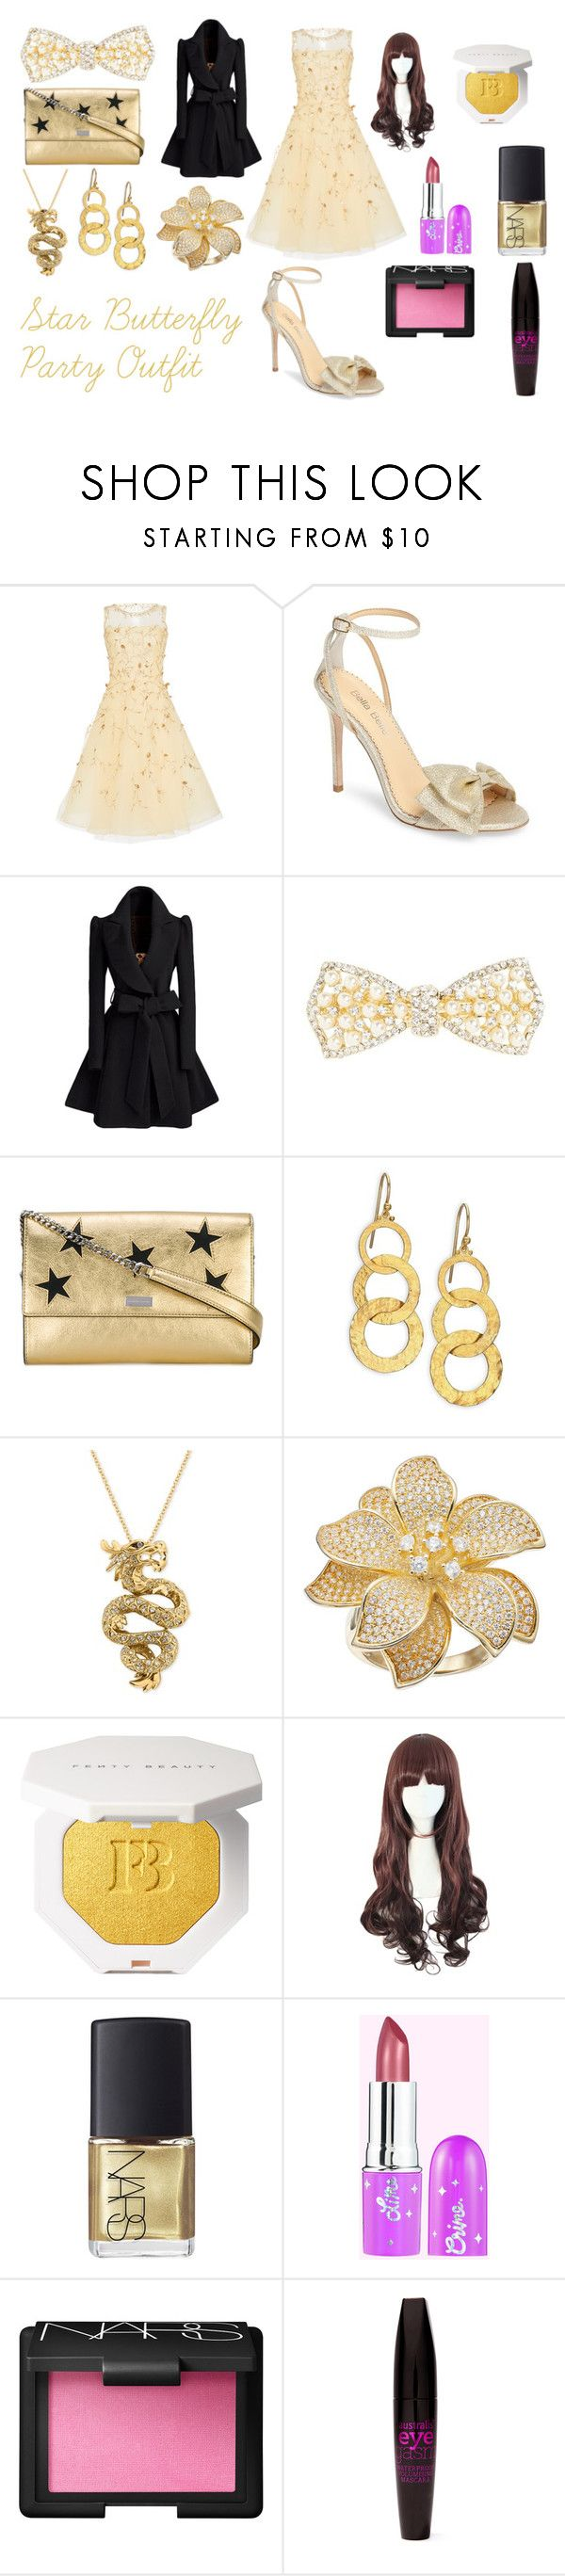 """""""Star Butterfly Party Outfit"""" by bethany3546 on Polyvore featuring Oscar de la Renta, Bella Belle, Cara, STELLA McCARTNEY, Gurhan, Effy Jewelry, NARS Cosmetics and Australis"""